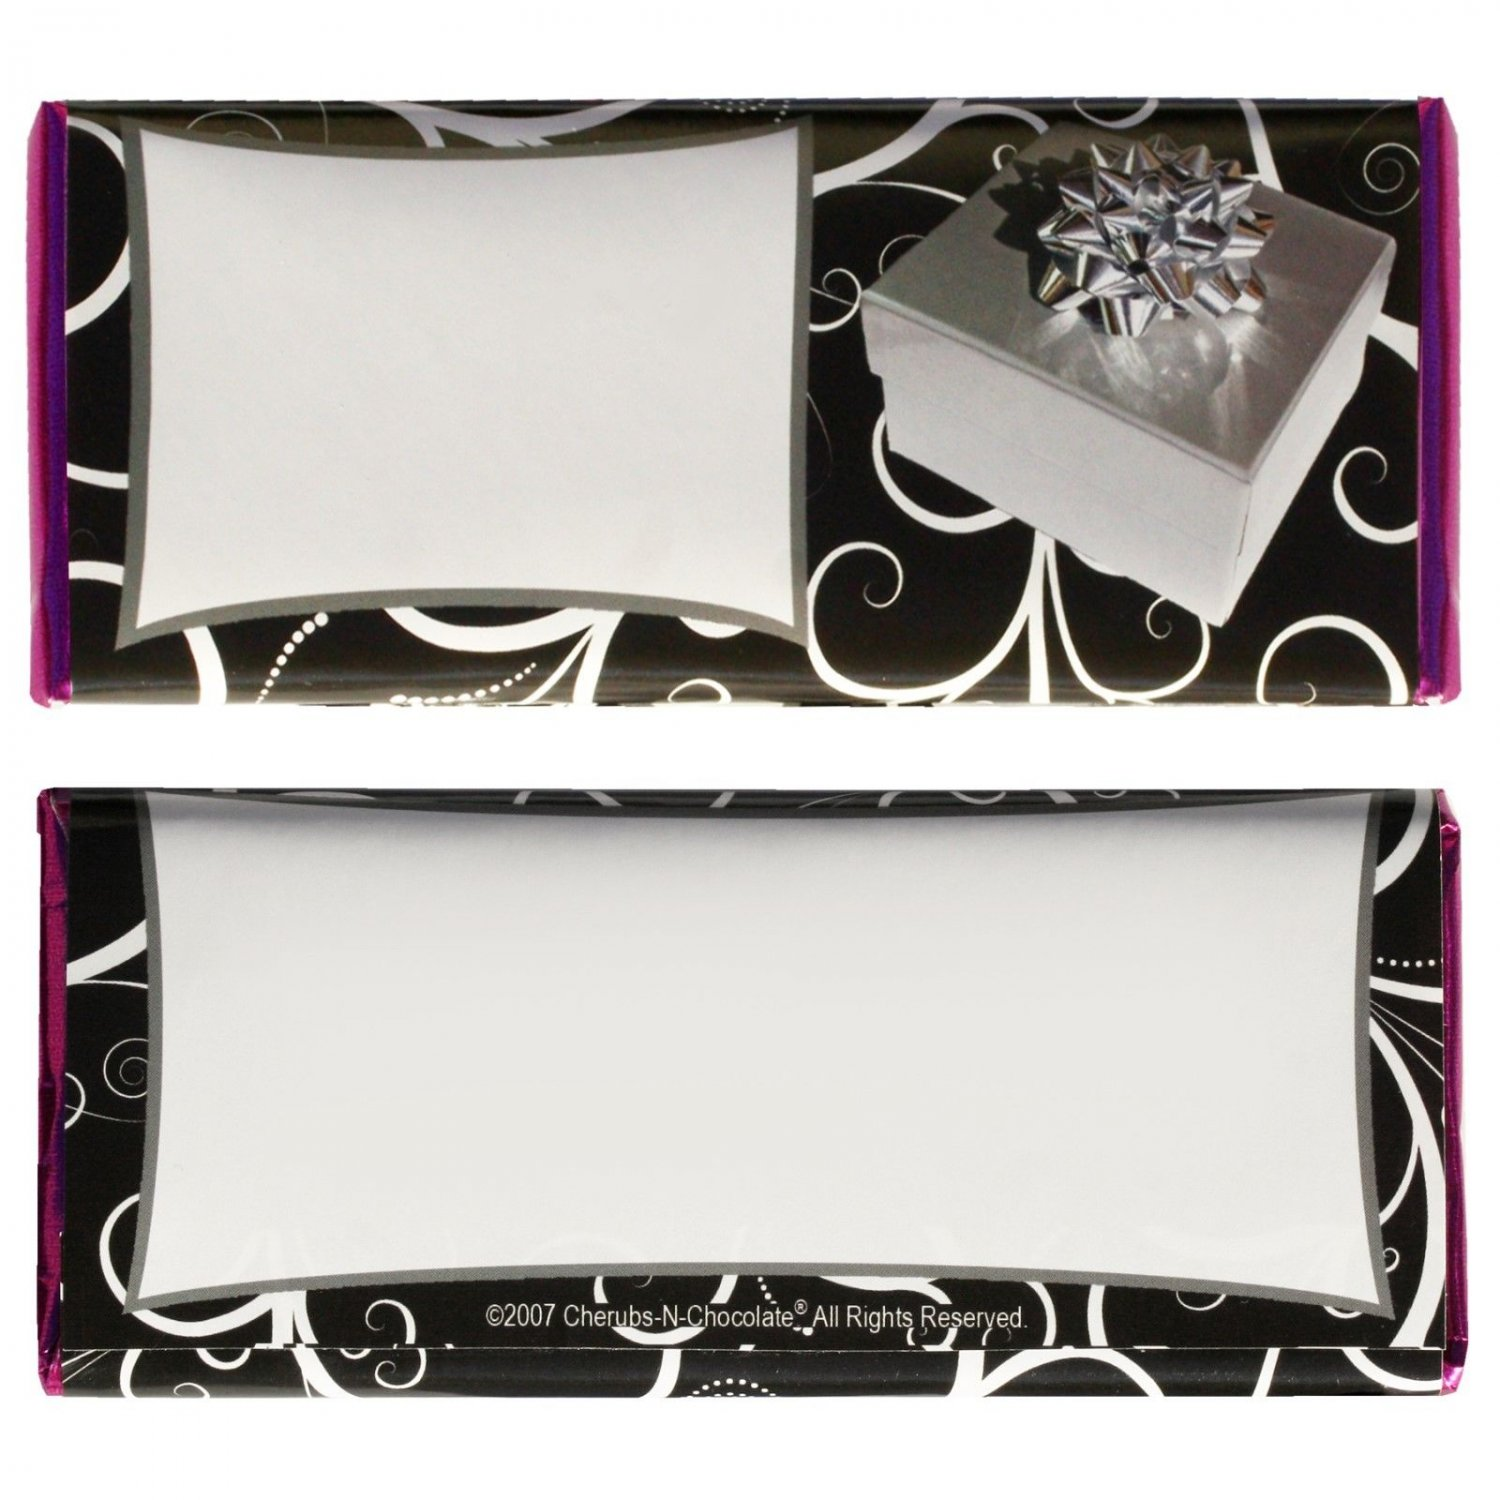 12 Birthday Hershey Candy Bar Wrappers Personalized Glossy Paper Weddings